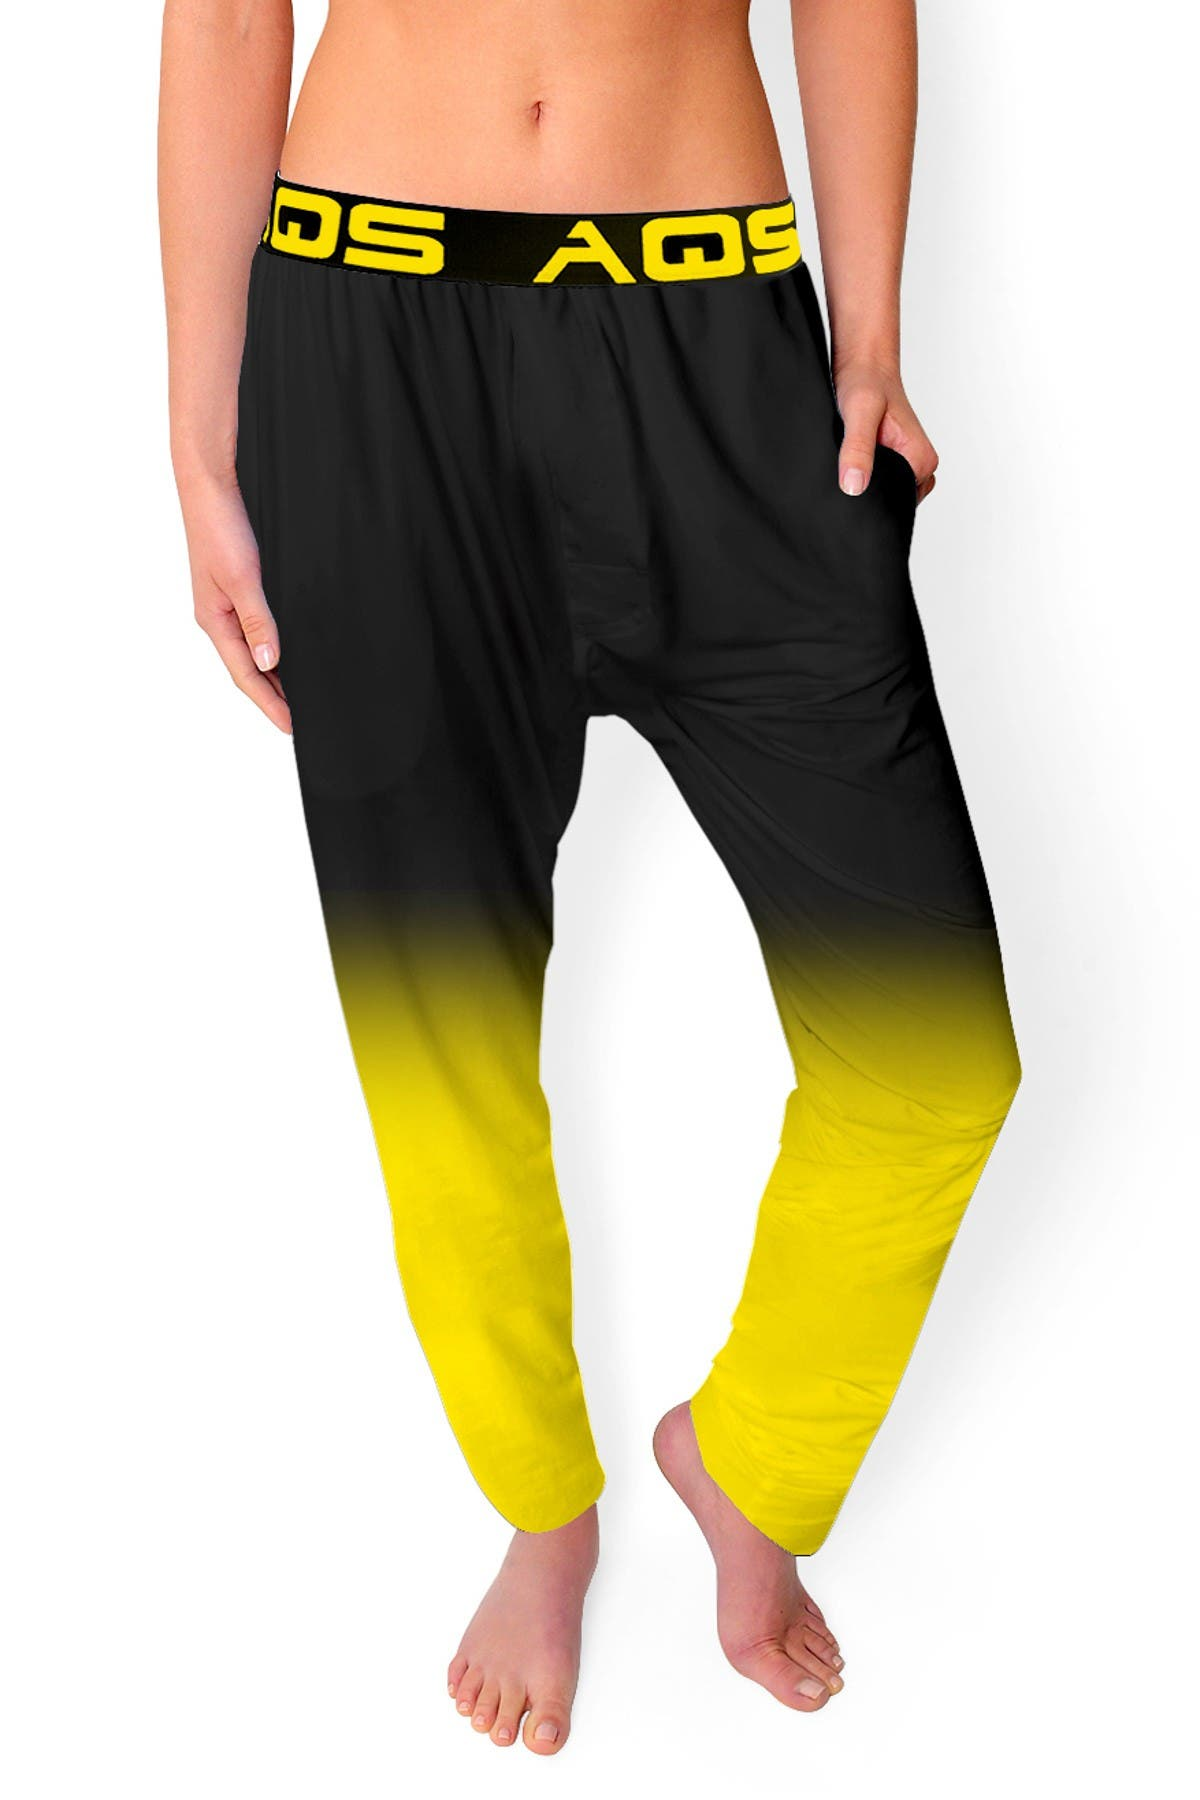 Image of AQS Ombre Lounge Pants - Medium